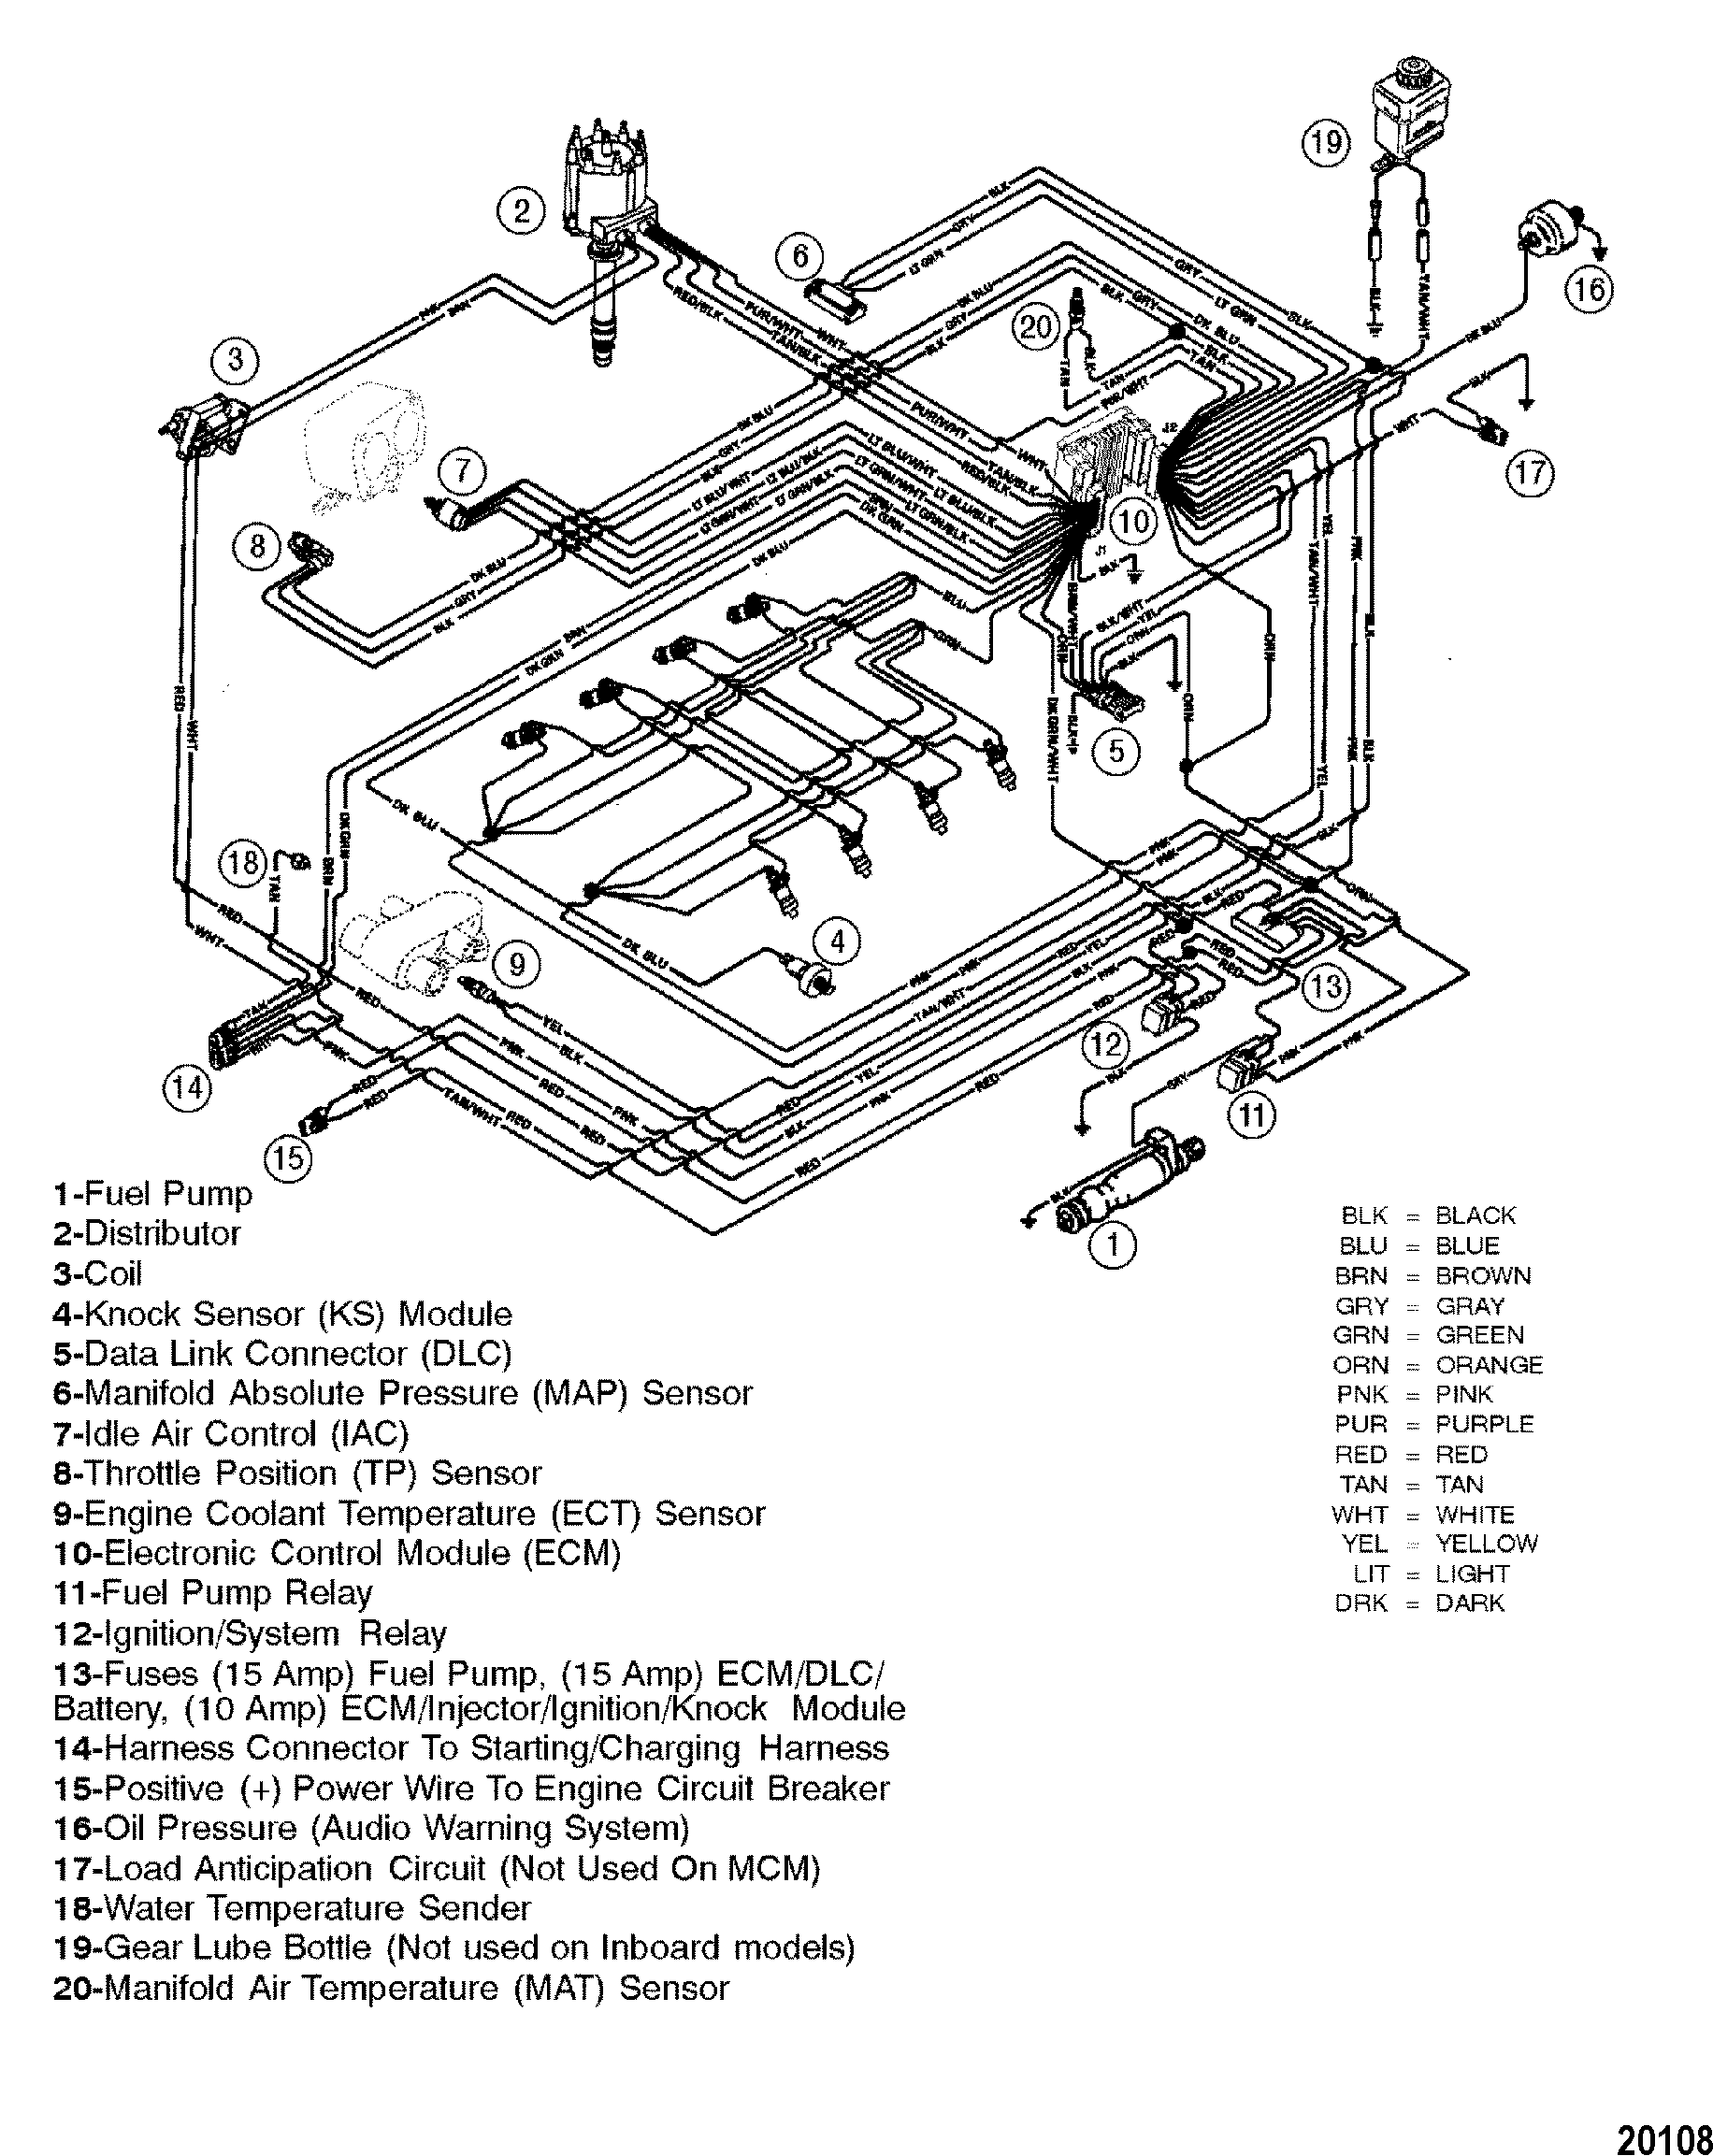 5 7 mercruiser wiring diagram online wiring diagram 7.4 Mercruiser Cooling Diagram mercruiser 5 7 350 chevy wiring diagram basic electronics wiring 5 7 mercruiser wiring diagram